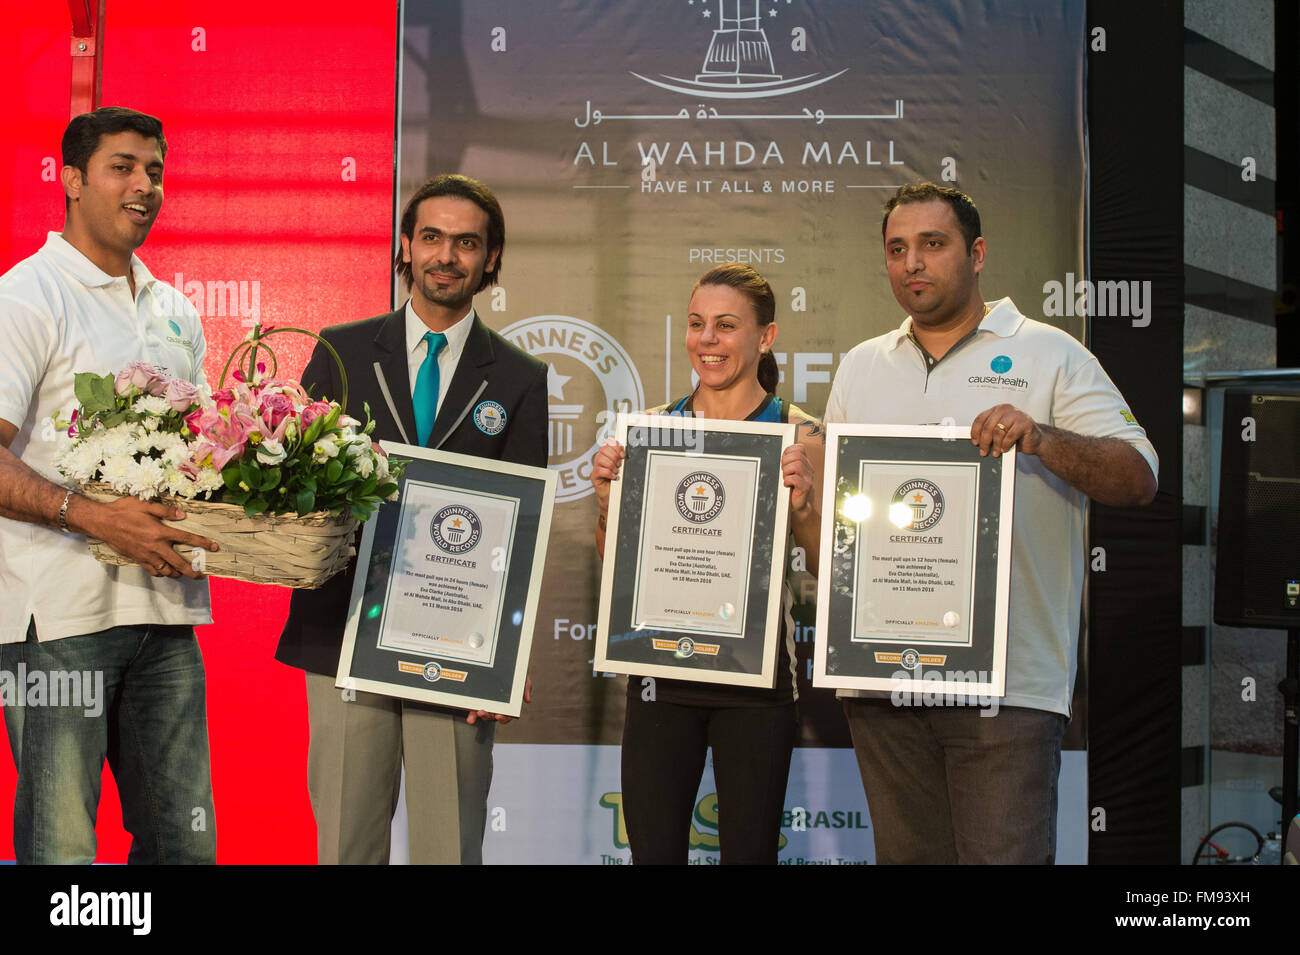 Al Wahda Mall, 11th March, 2016. Eva Clarke and the Guinness World Records official after having completed 3737 - Stock Image